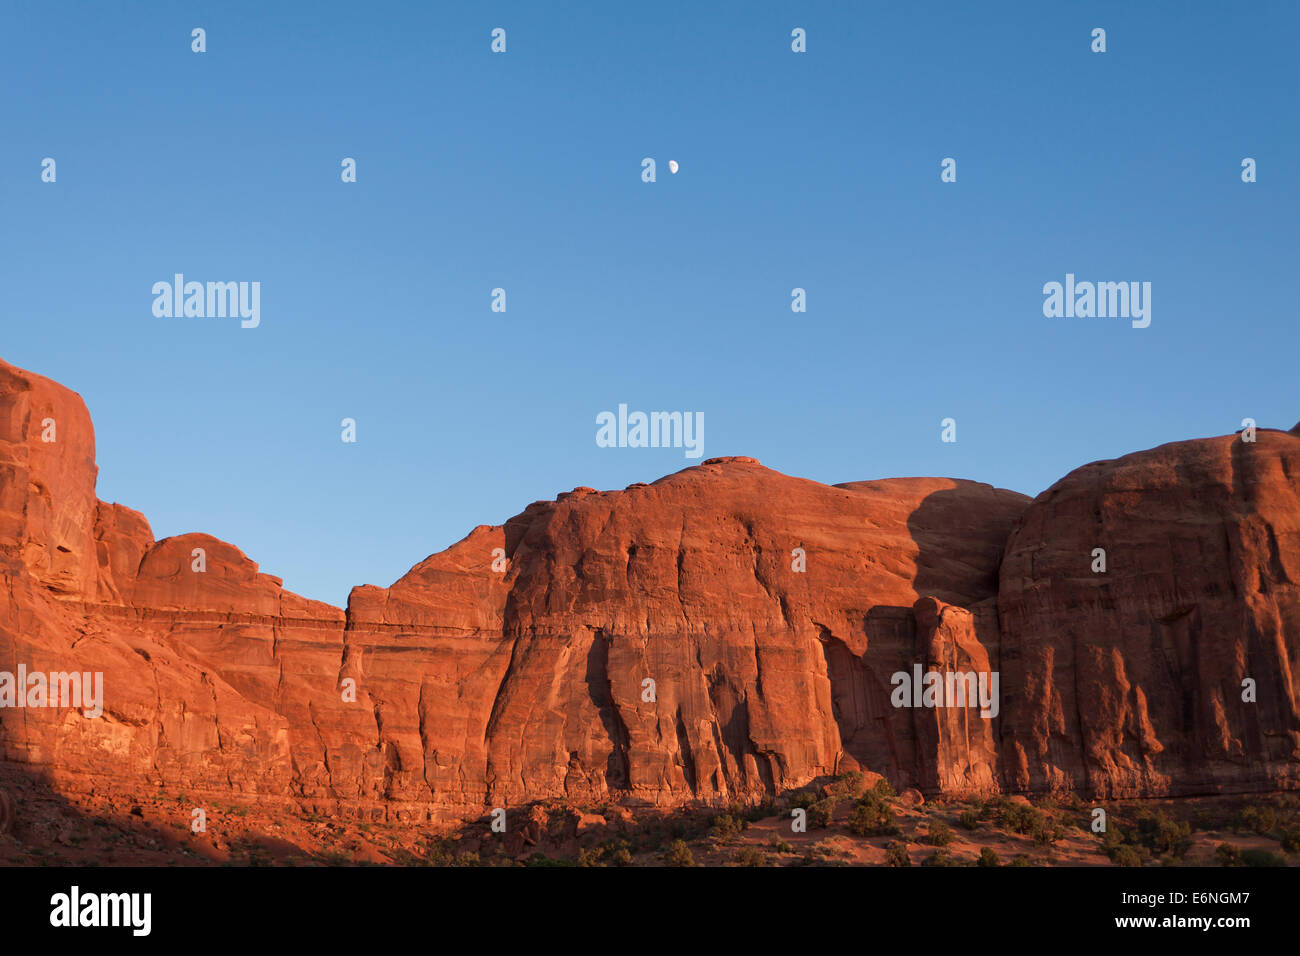 Exposed red sandstone rock formation lit by late afternoon sun - Utah USA - Stock Image